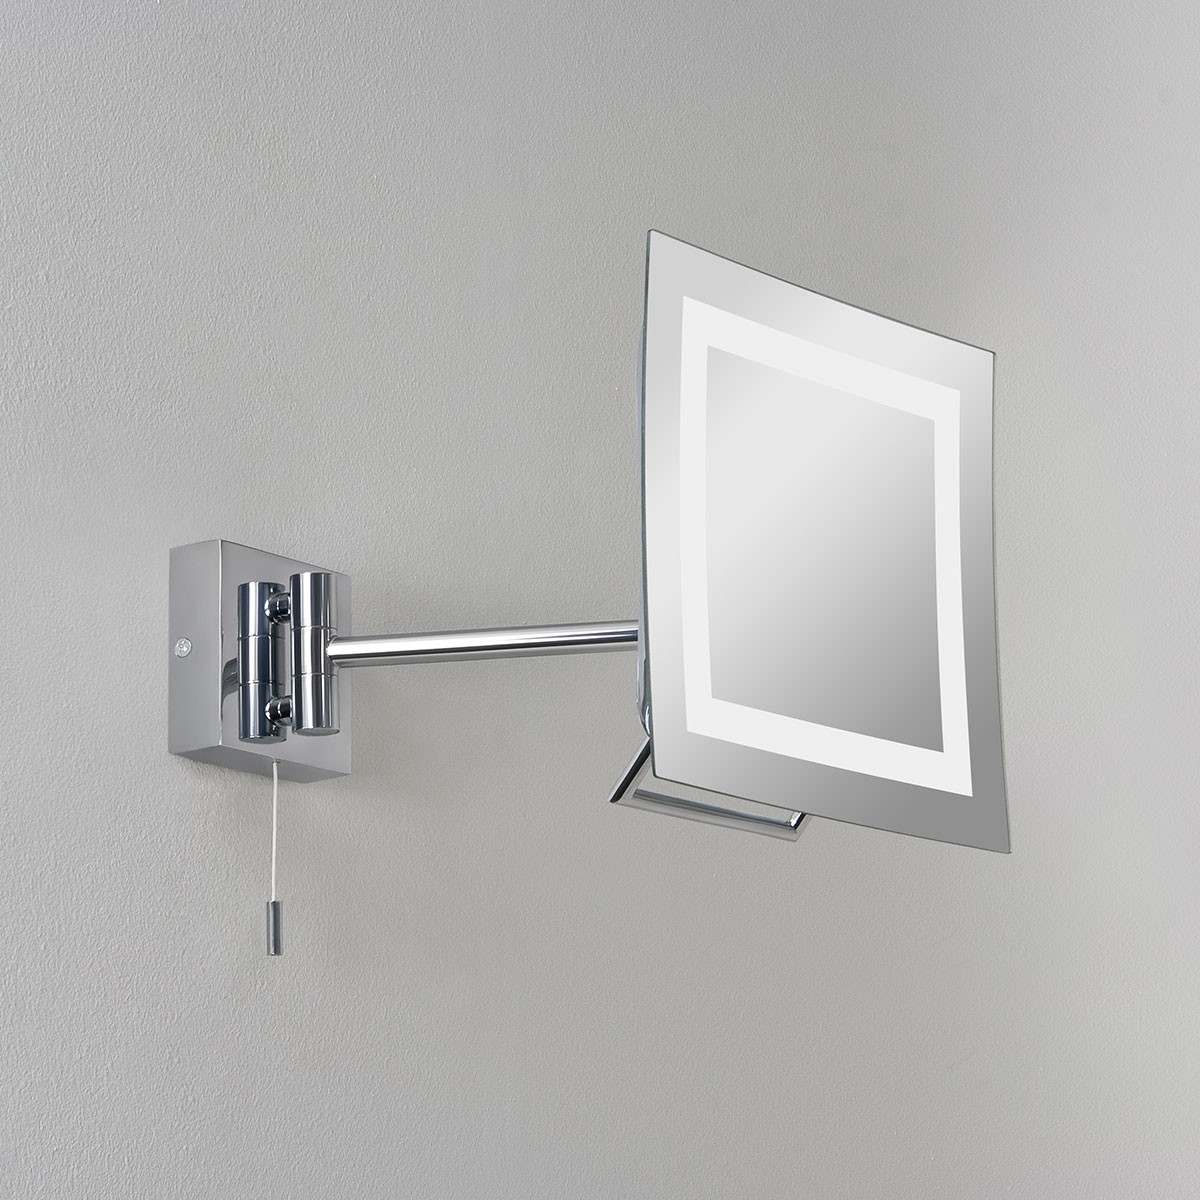 Astro niro polished chrome bathroom mirror light at uk electrical supplies Polished chrome bathroom mirrors